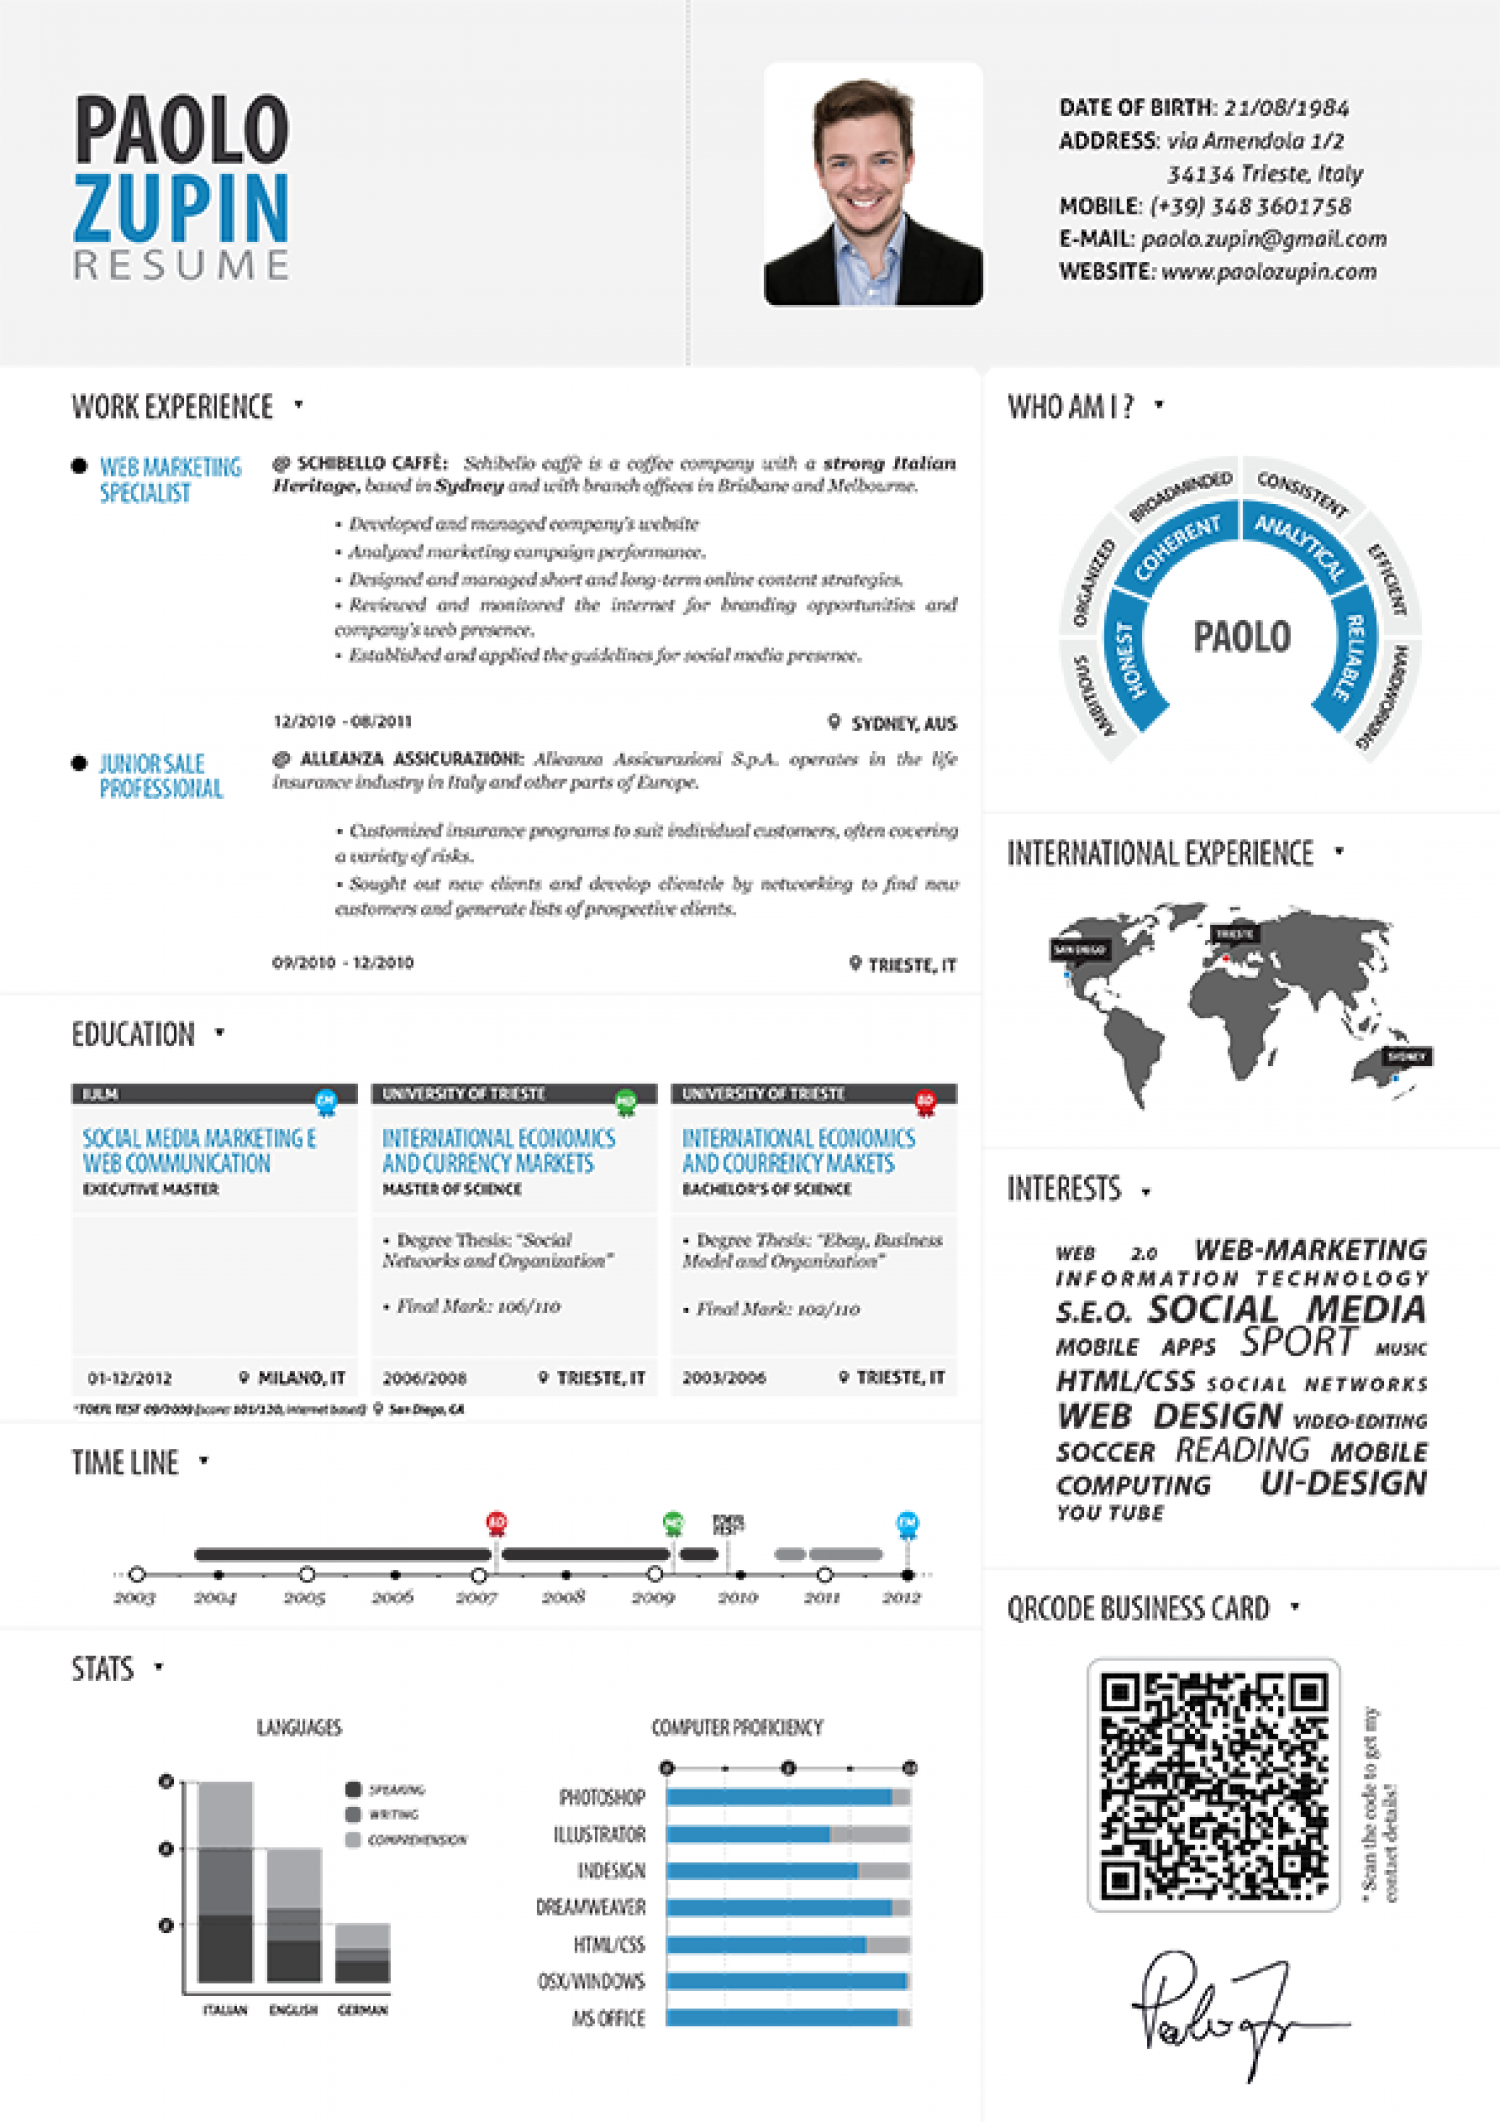 Paolo Zupin Infographic Resume Visual